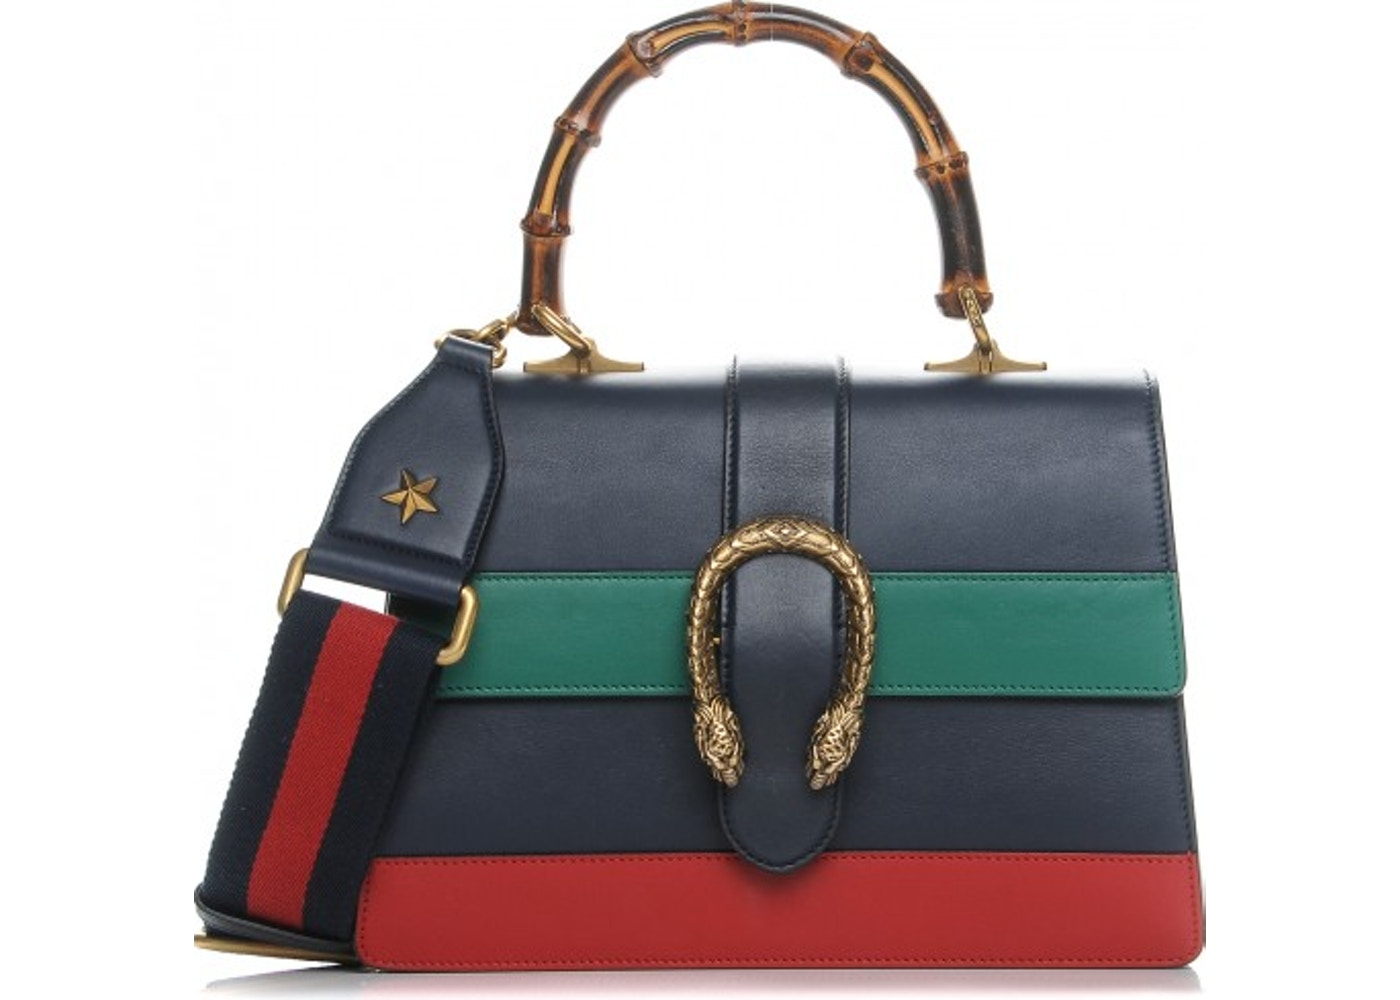 a4b4b45e4ca8 Gucci Dionysus Top Handle Medium Navy Blue/Green/Red. Medium Navy Blue/Green /Red